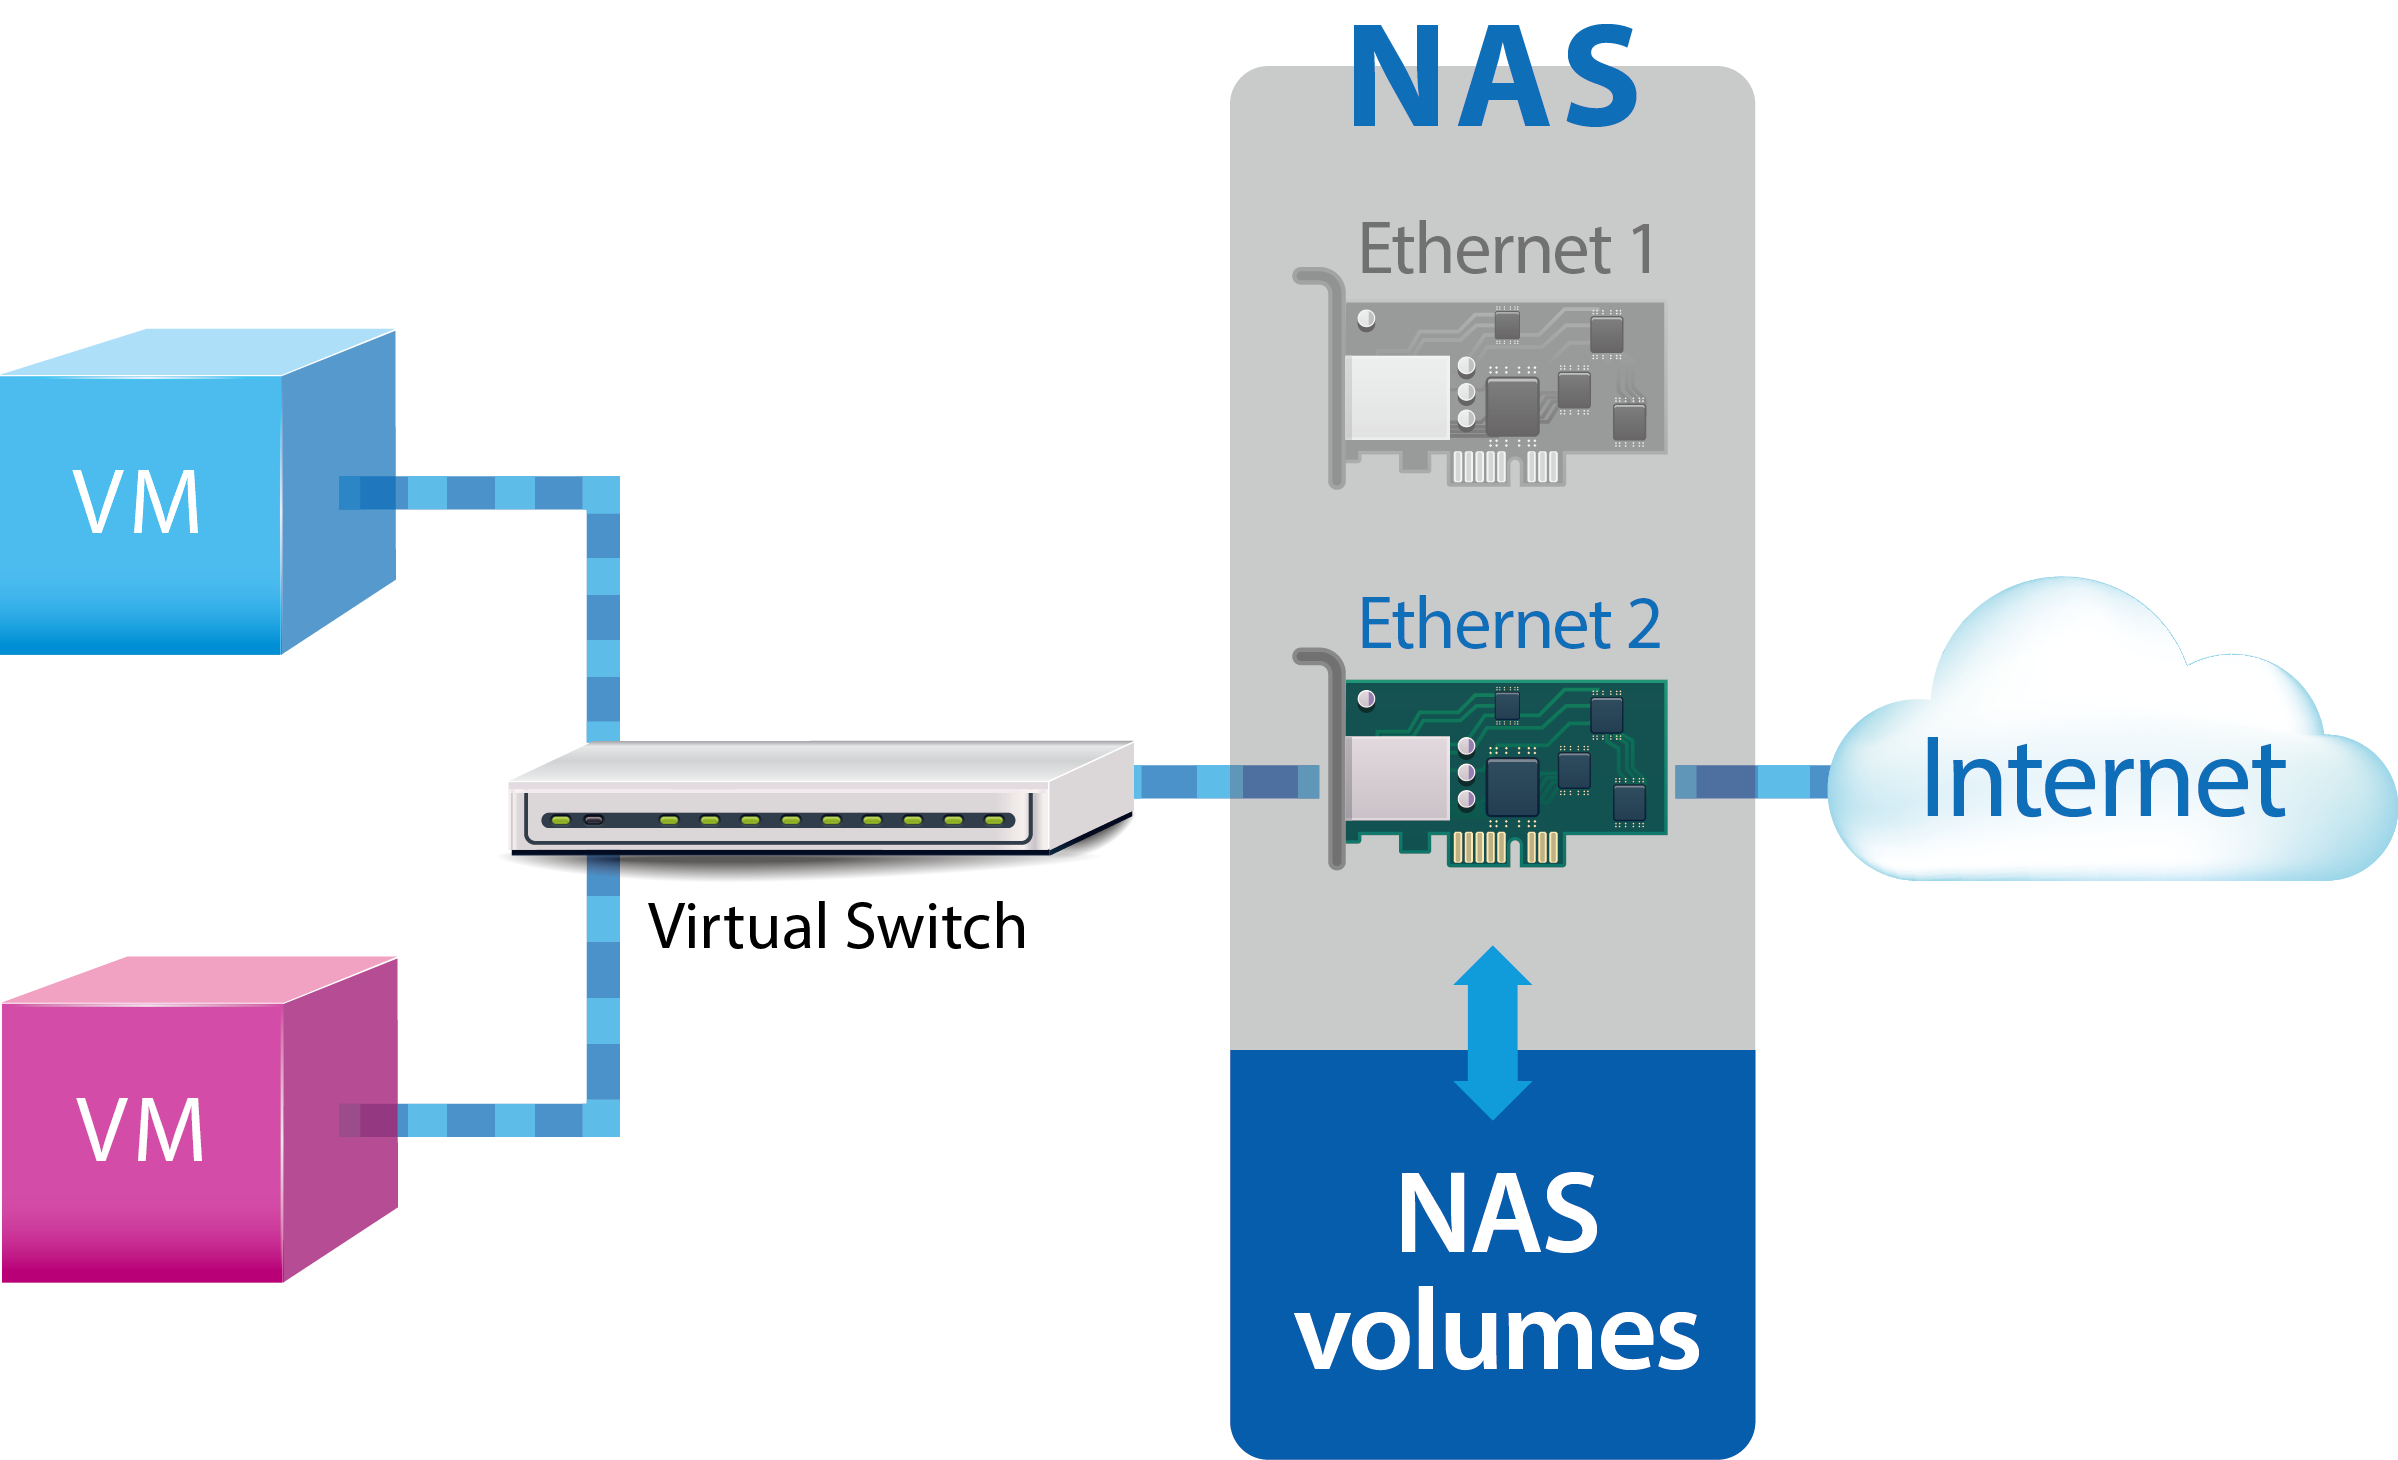 networking modes of virtualization station qnap